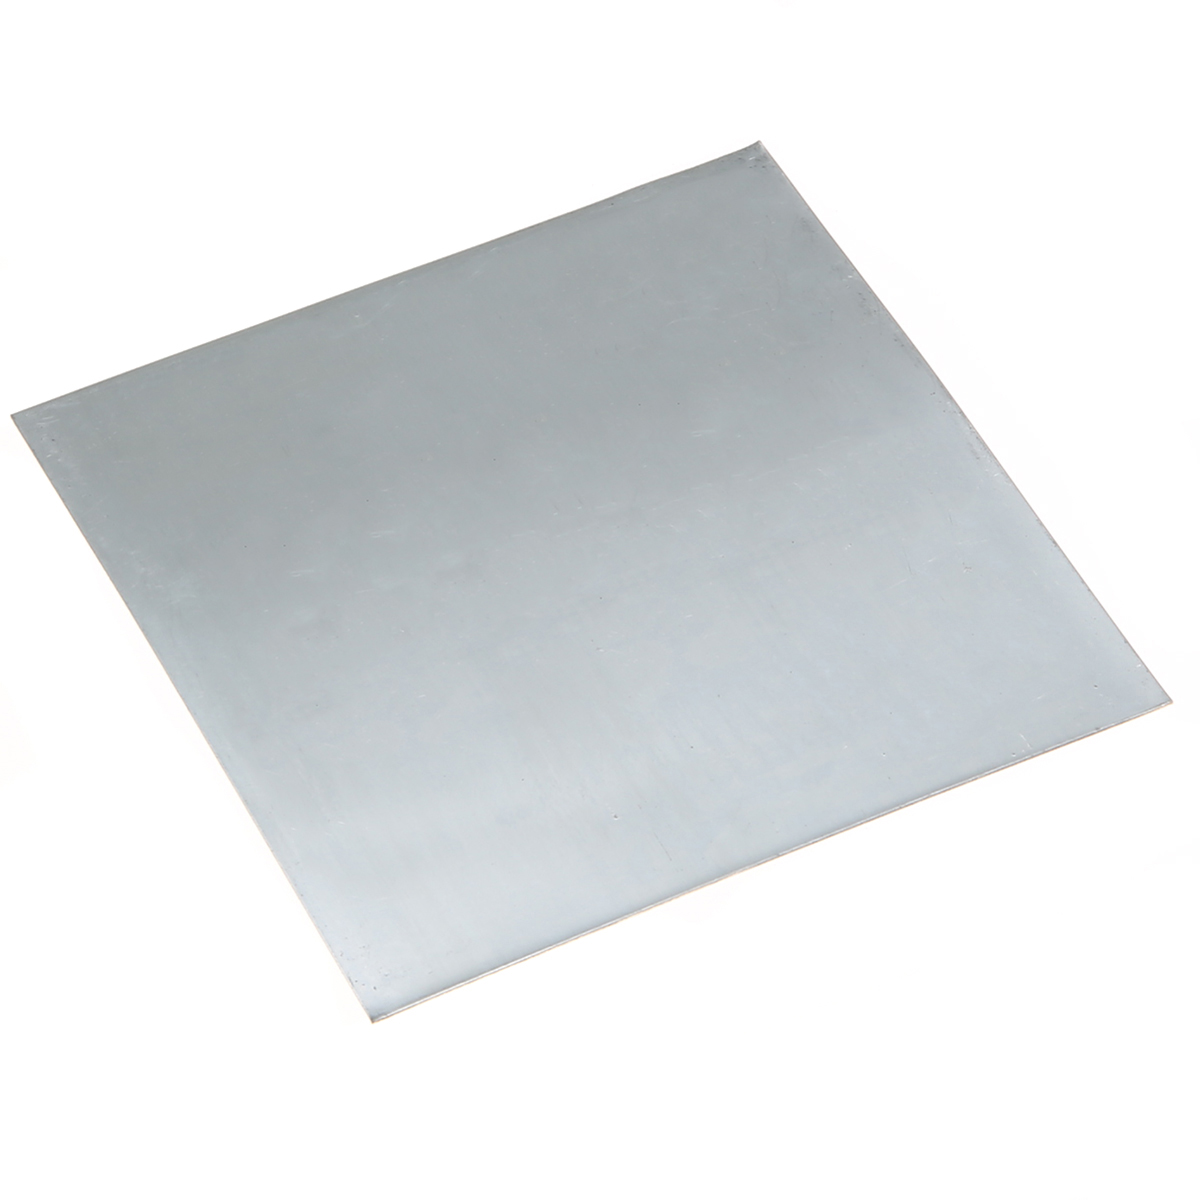 1Pcs  Zinc Plate 99.9% Pure Zinc Zn Sheet Plate 100mmx100mmx0.2mm For Science Lab Accessories